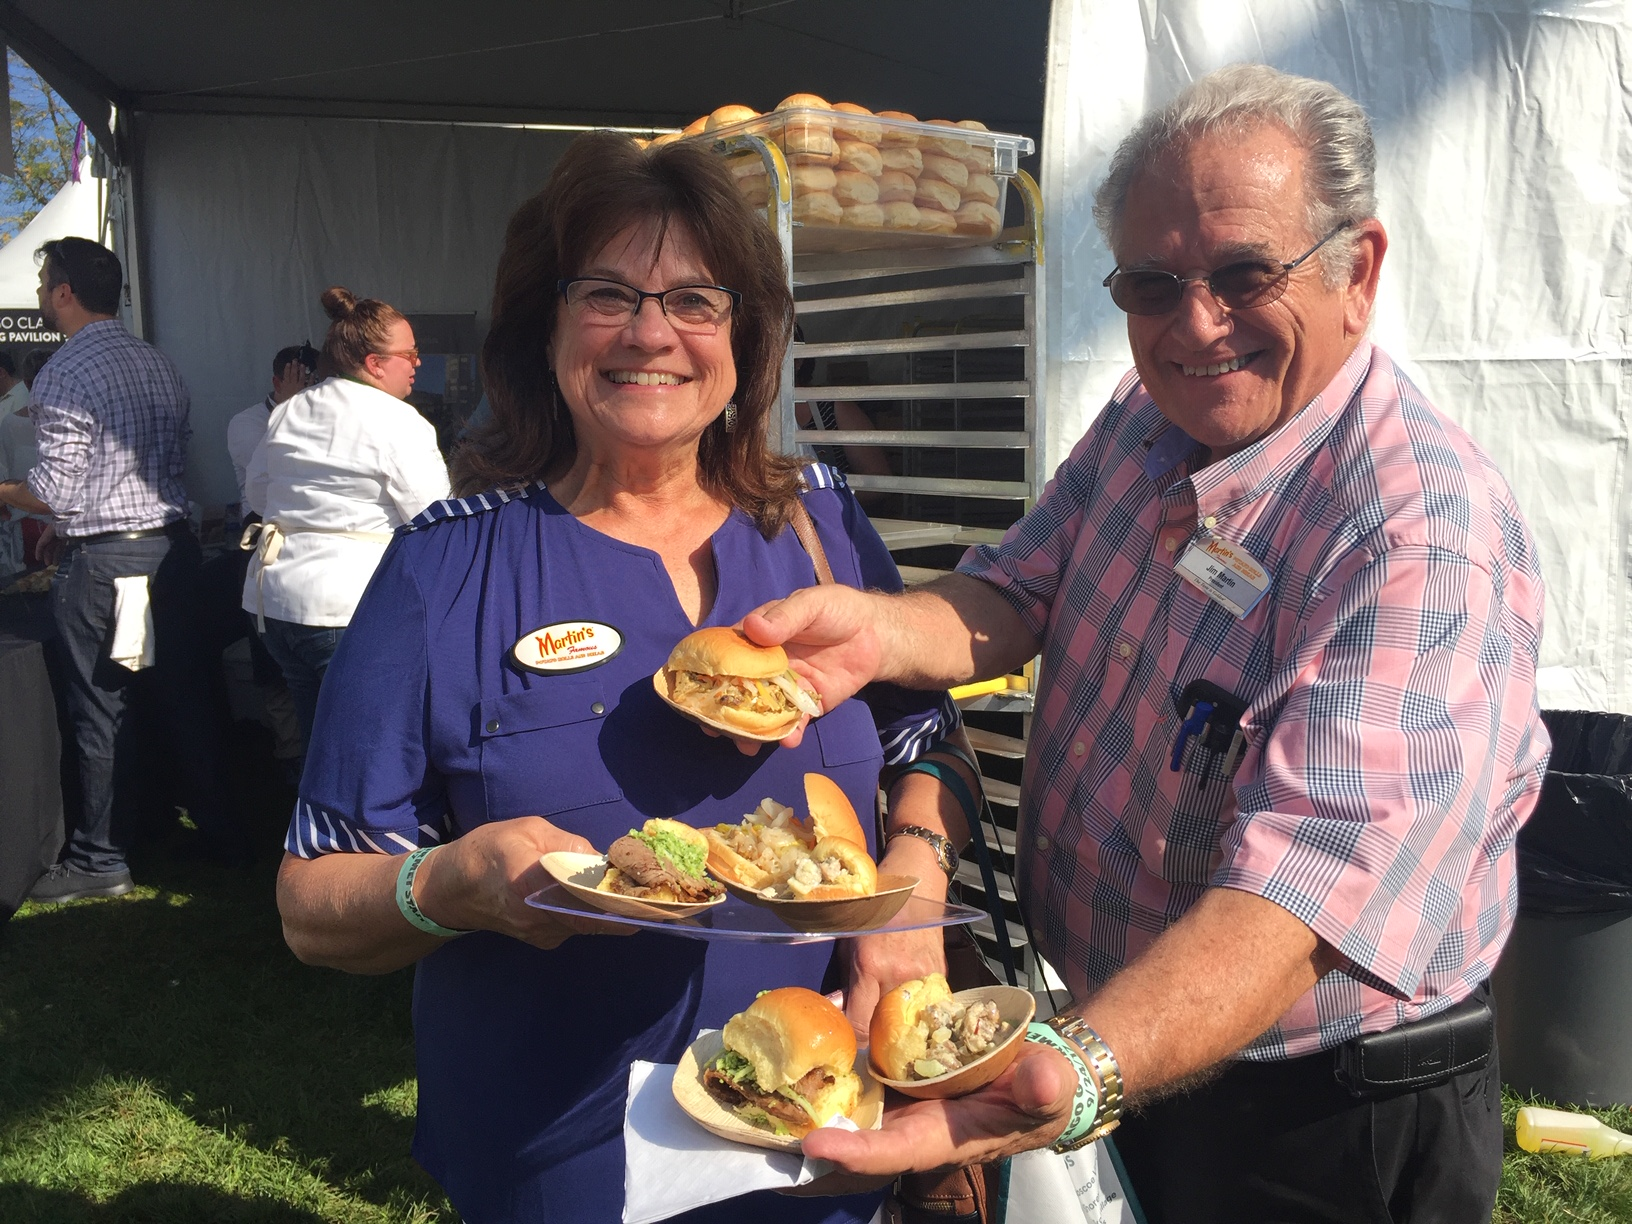 Jim_with_his_wife_Donna_serving_sandwiches_with_Martin's_Potato_Rolls